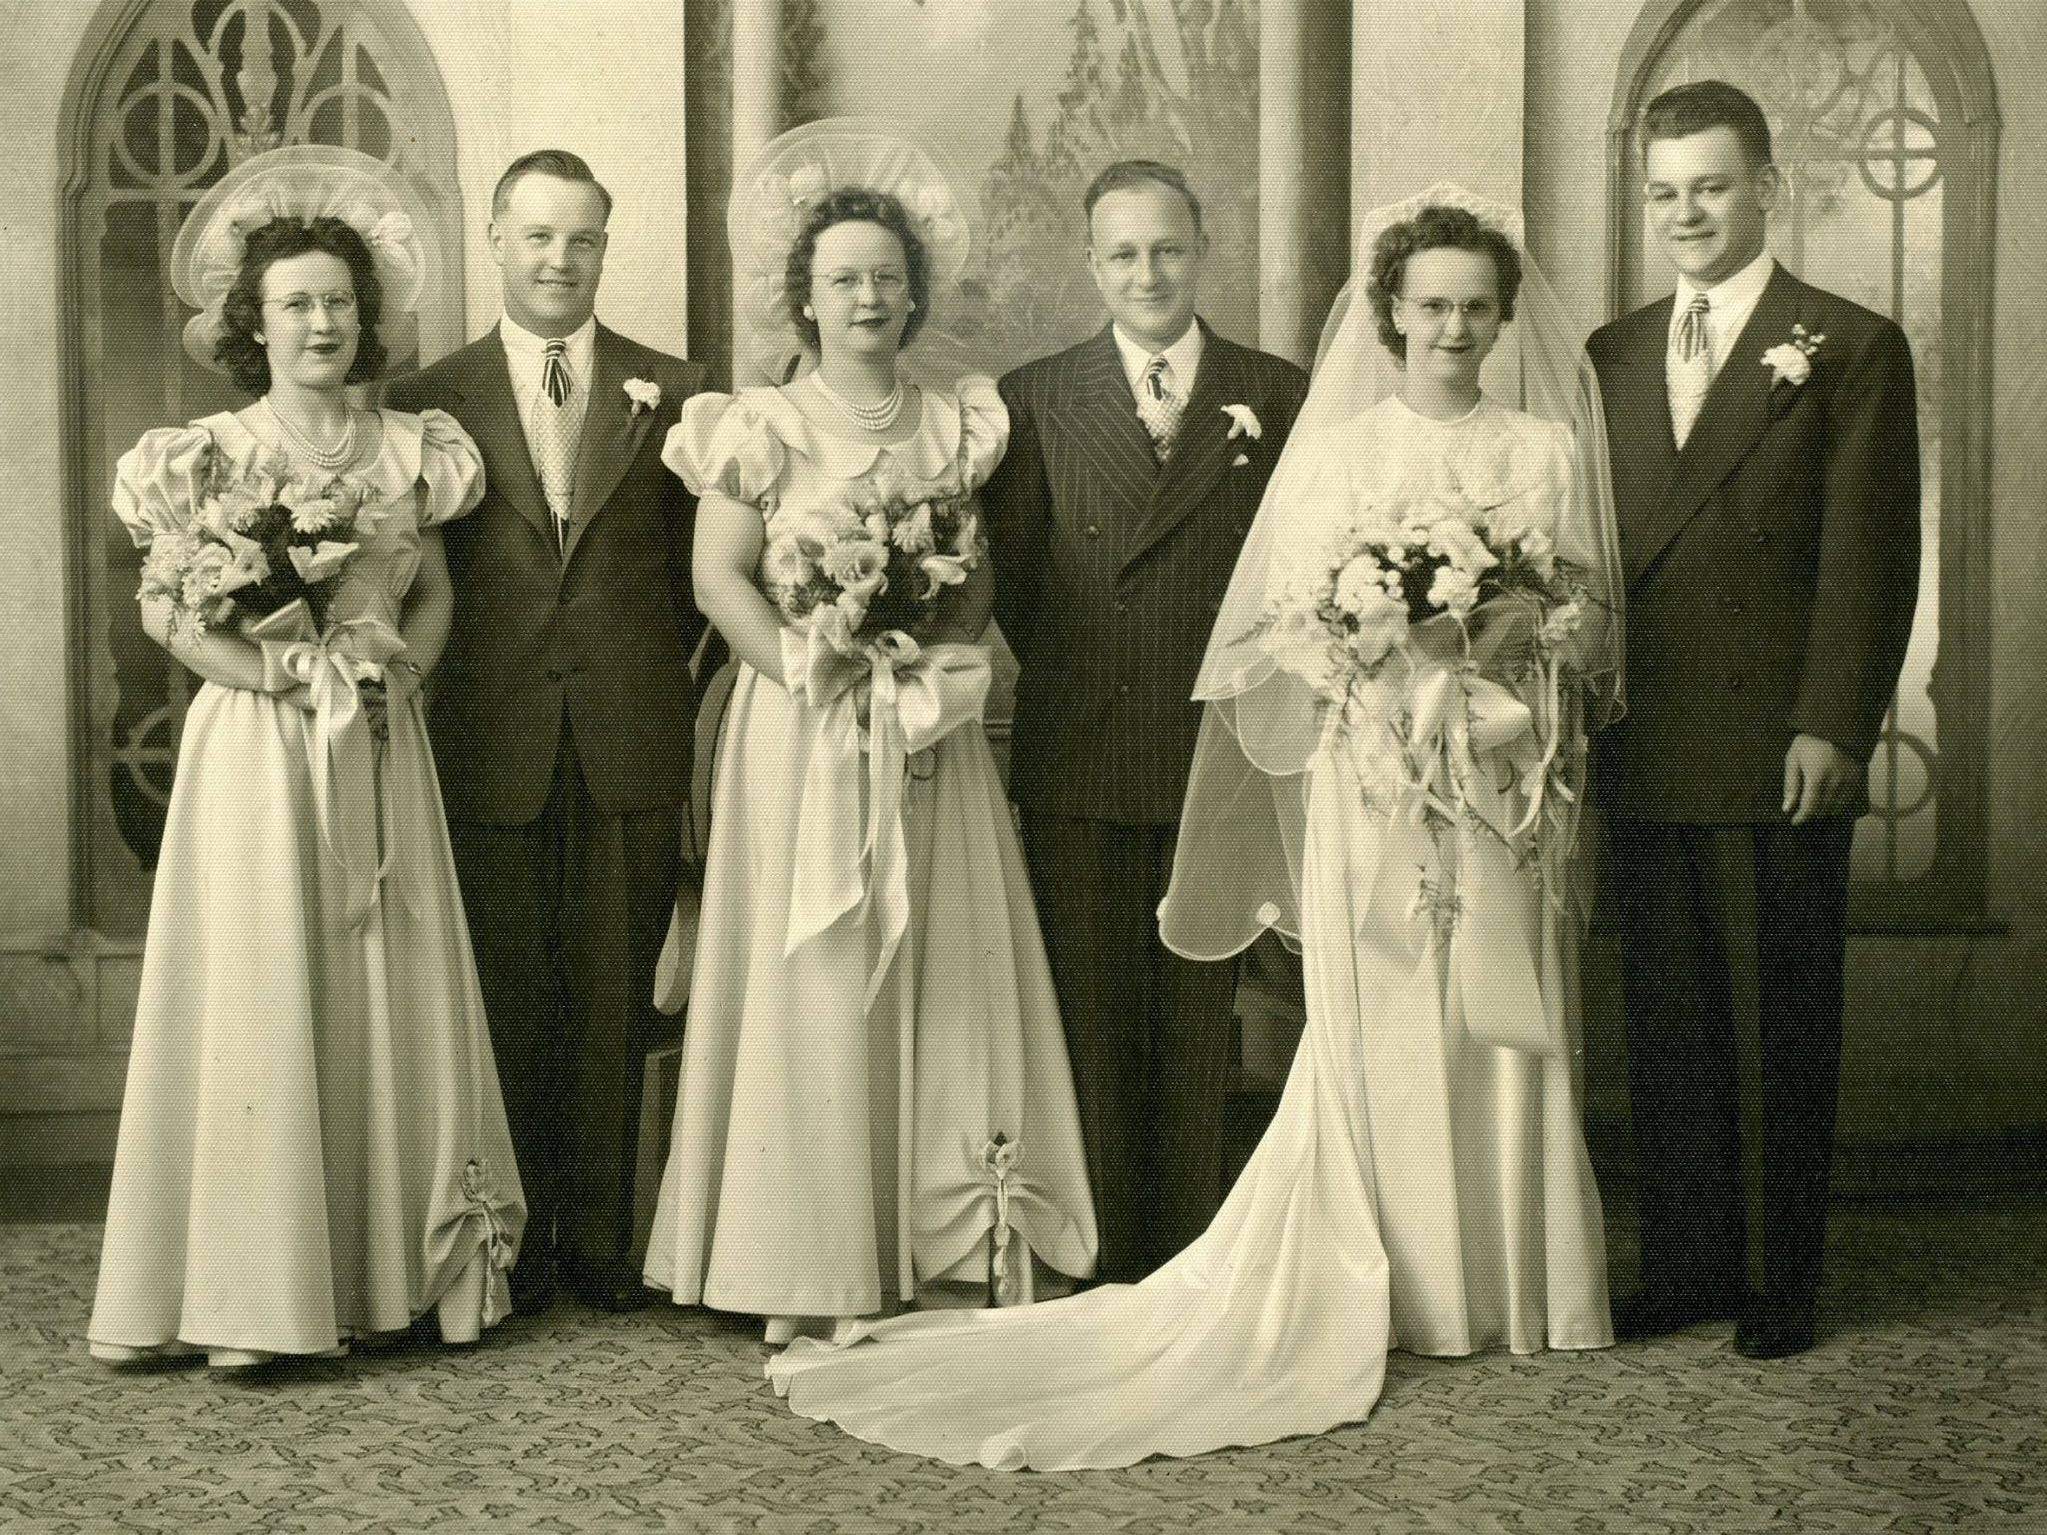 "Carol (Edler) Petermann and George Petermann on thier wedding day, June 5, 1948 in Michigan. Carol passed on July, 13, 1972 and George on Nov. 14, 1995. Their daughter, Barbara Louisignau (who is also featured in the gallery), said ""My father never remarried saying he had his one true love and would never forget her and she would always be his wife."""